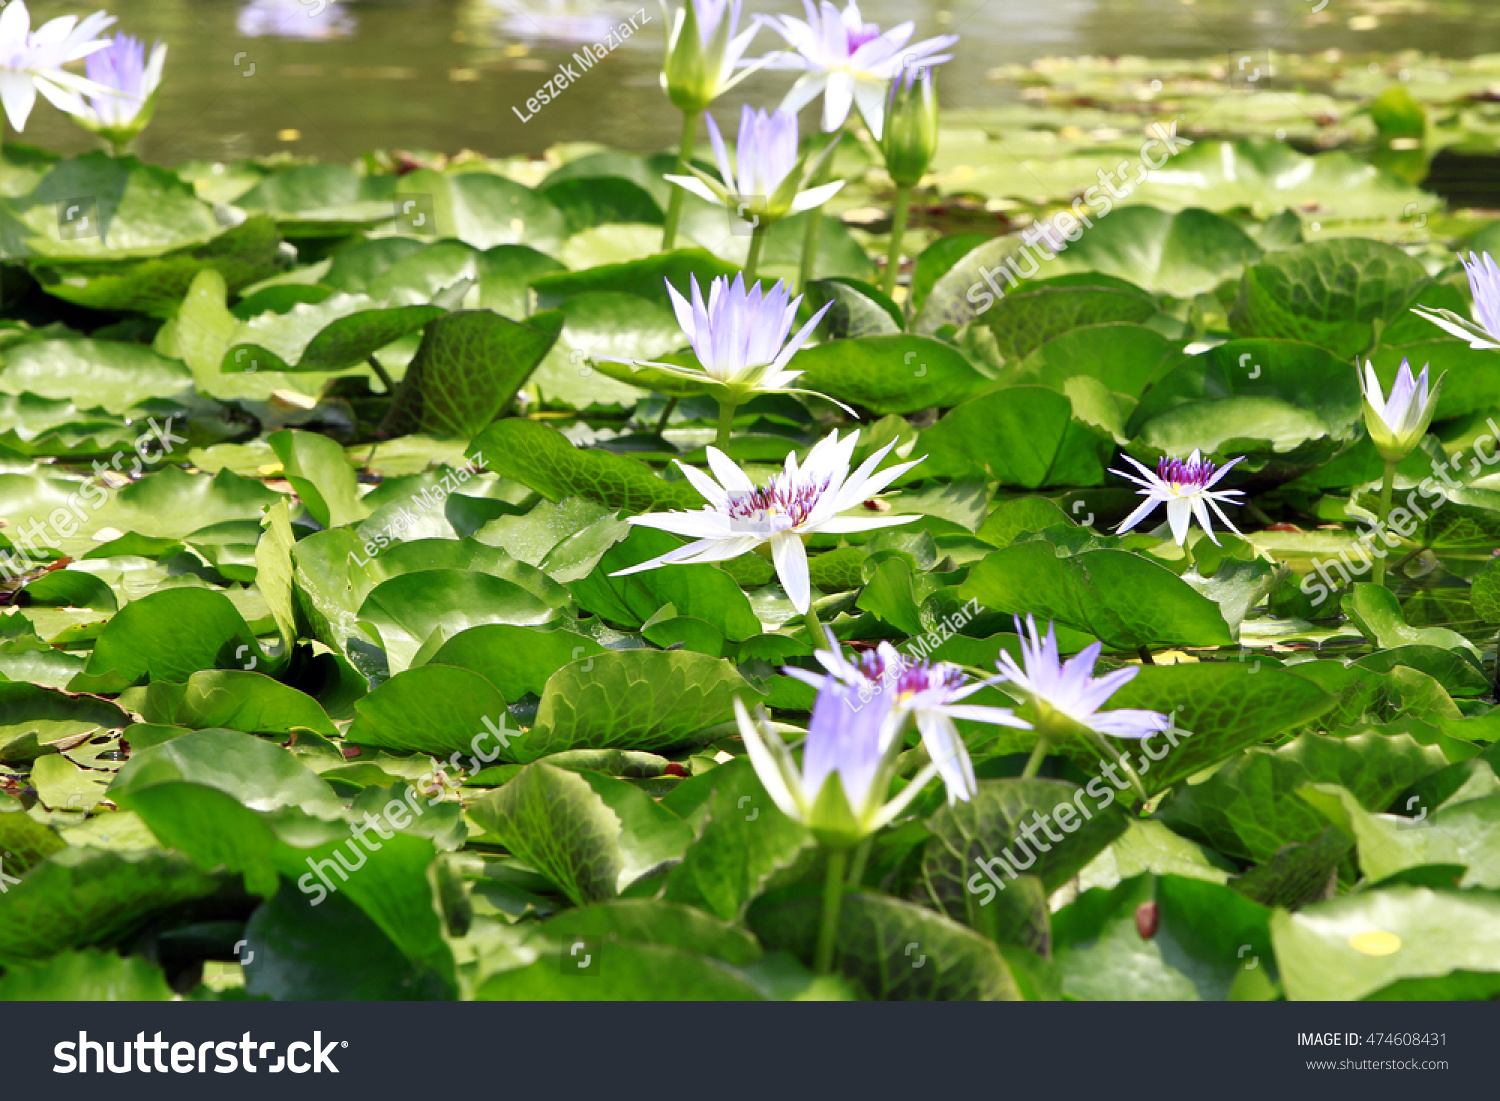 Top view white violet lotus flower stock photo 100 legal top view of white violet lotus flower in water pond izmirmasajfo